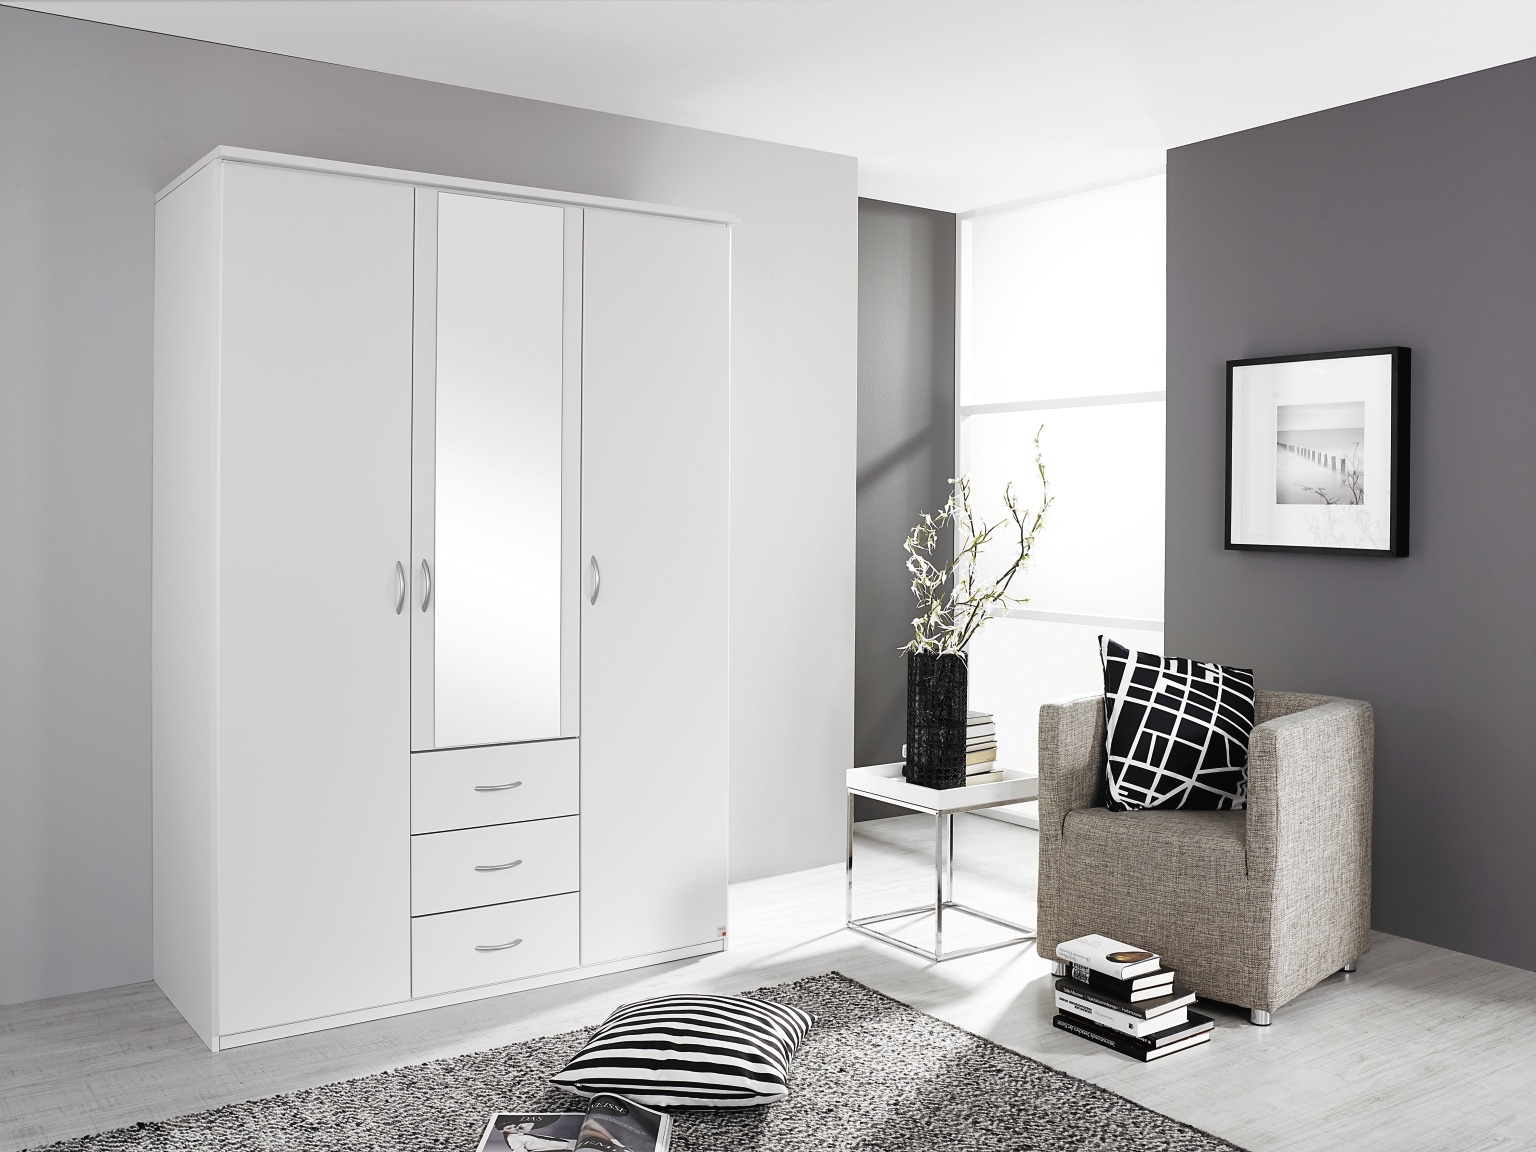 Rauch Blitz 2 Door Wardrobe in Alpine White - W 91cm